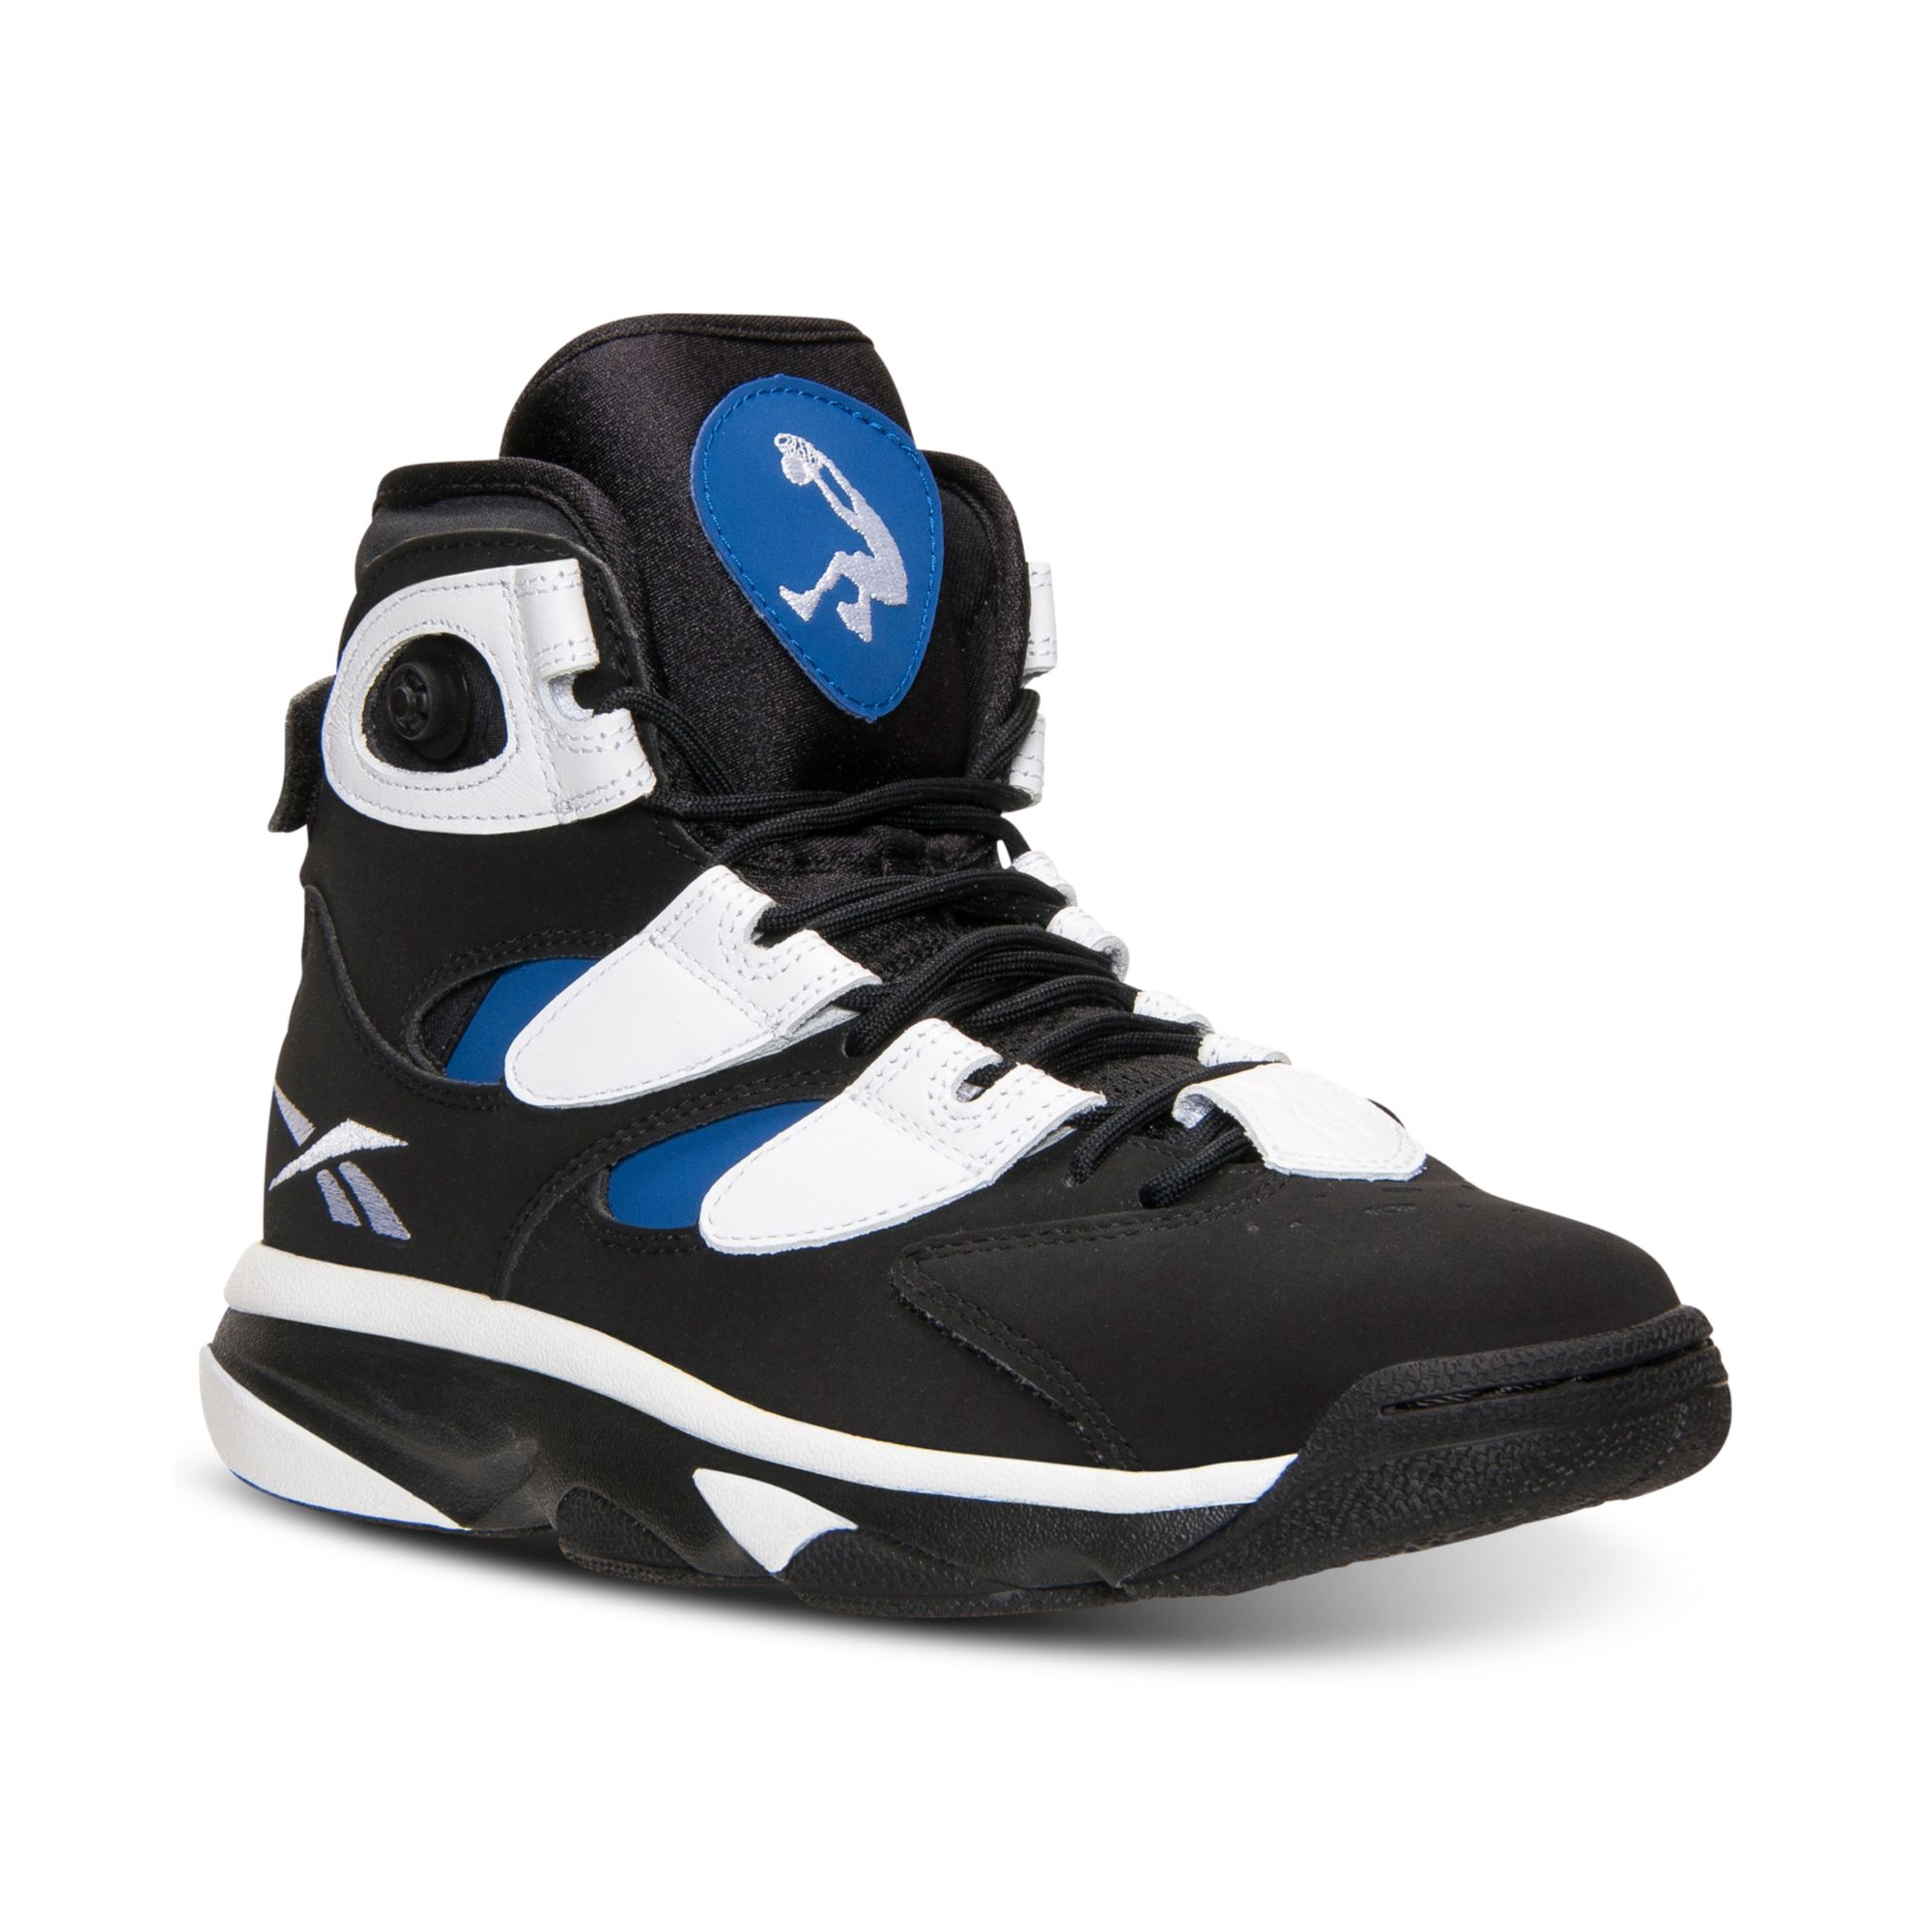 reebok men 39 s insta pump shaq attaq 4 basketball sneakers. Black Bedroom Furniture Sets. Home Design Ideas